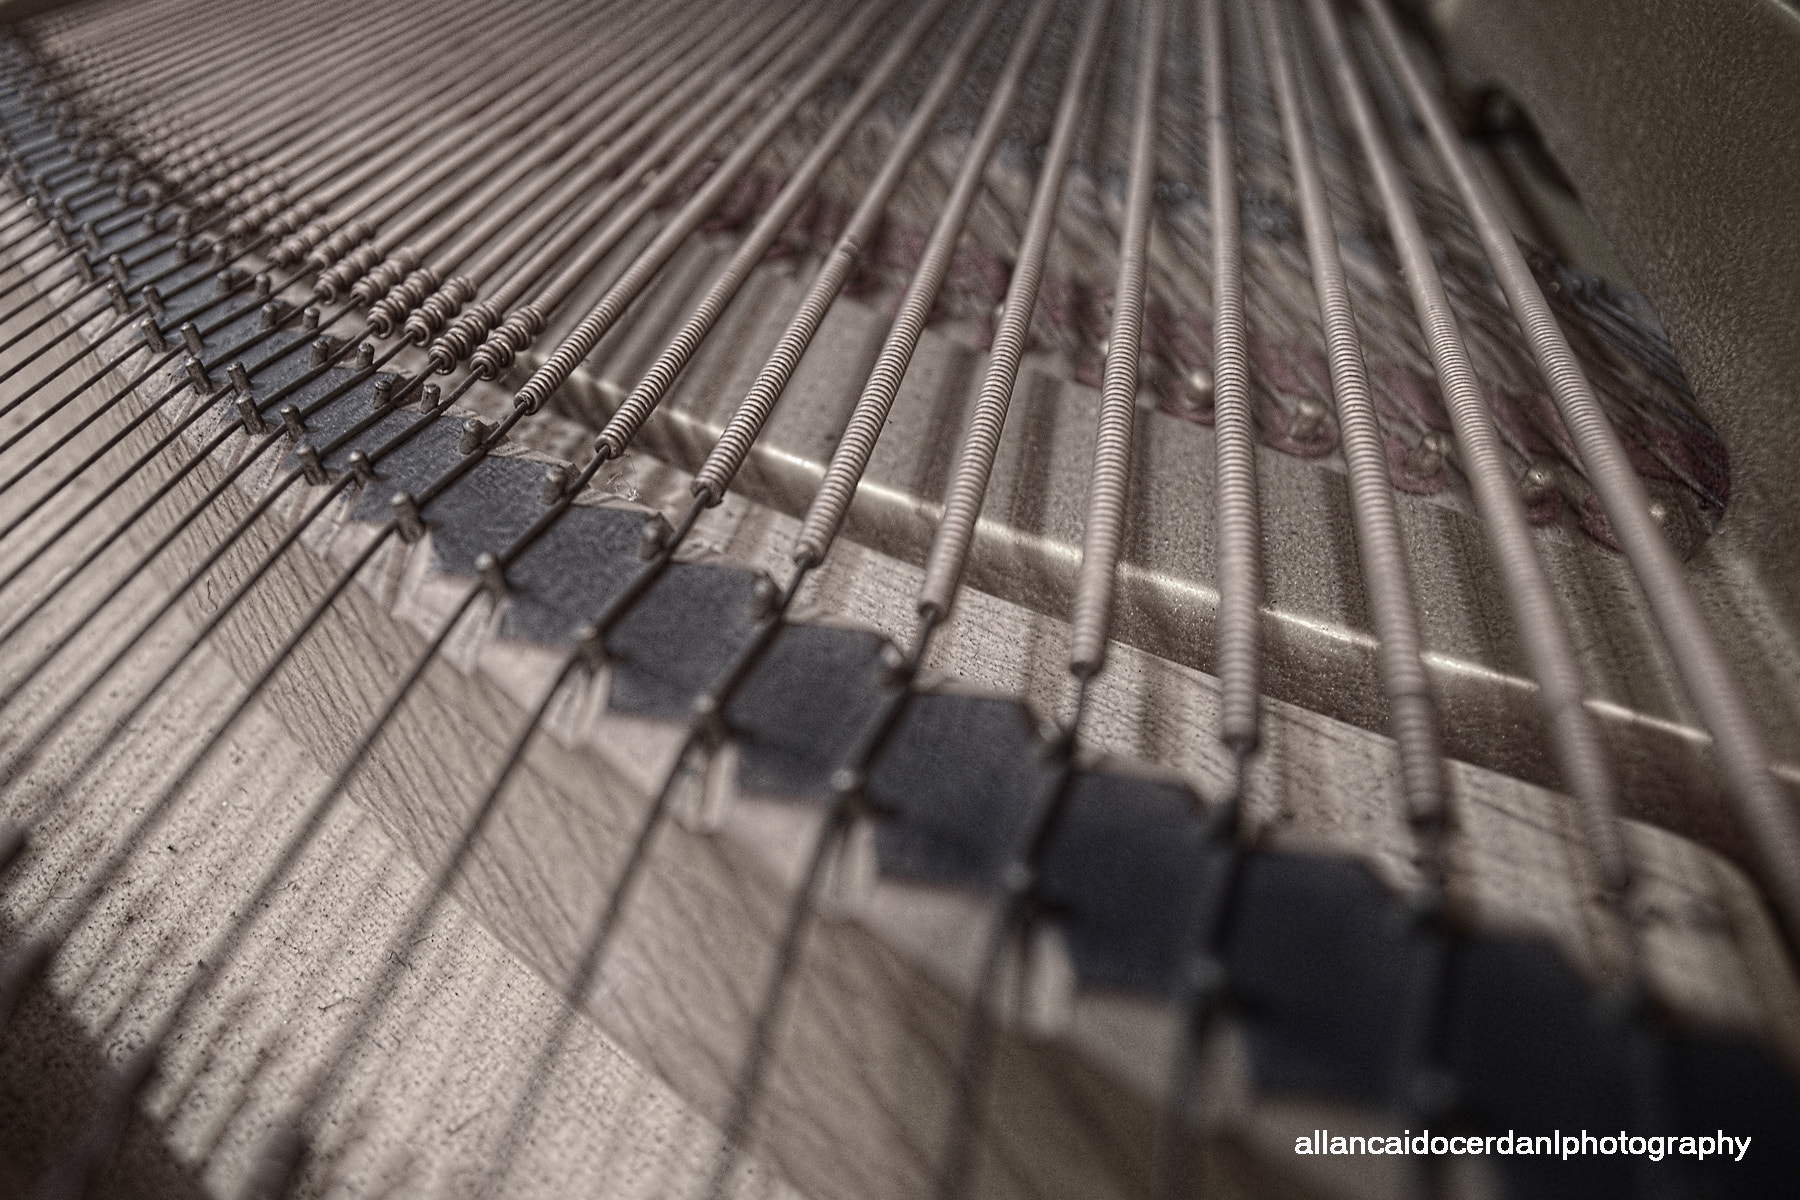 Photograph The Piano by Allan Cerdan on 500px